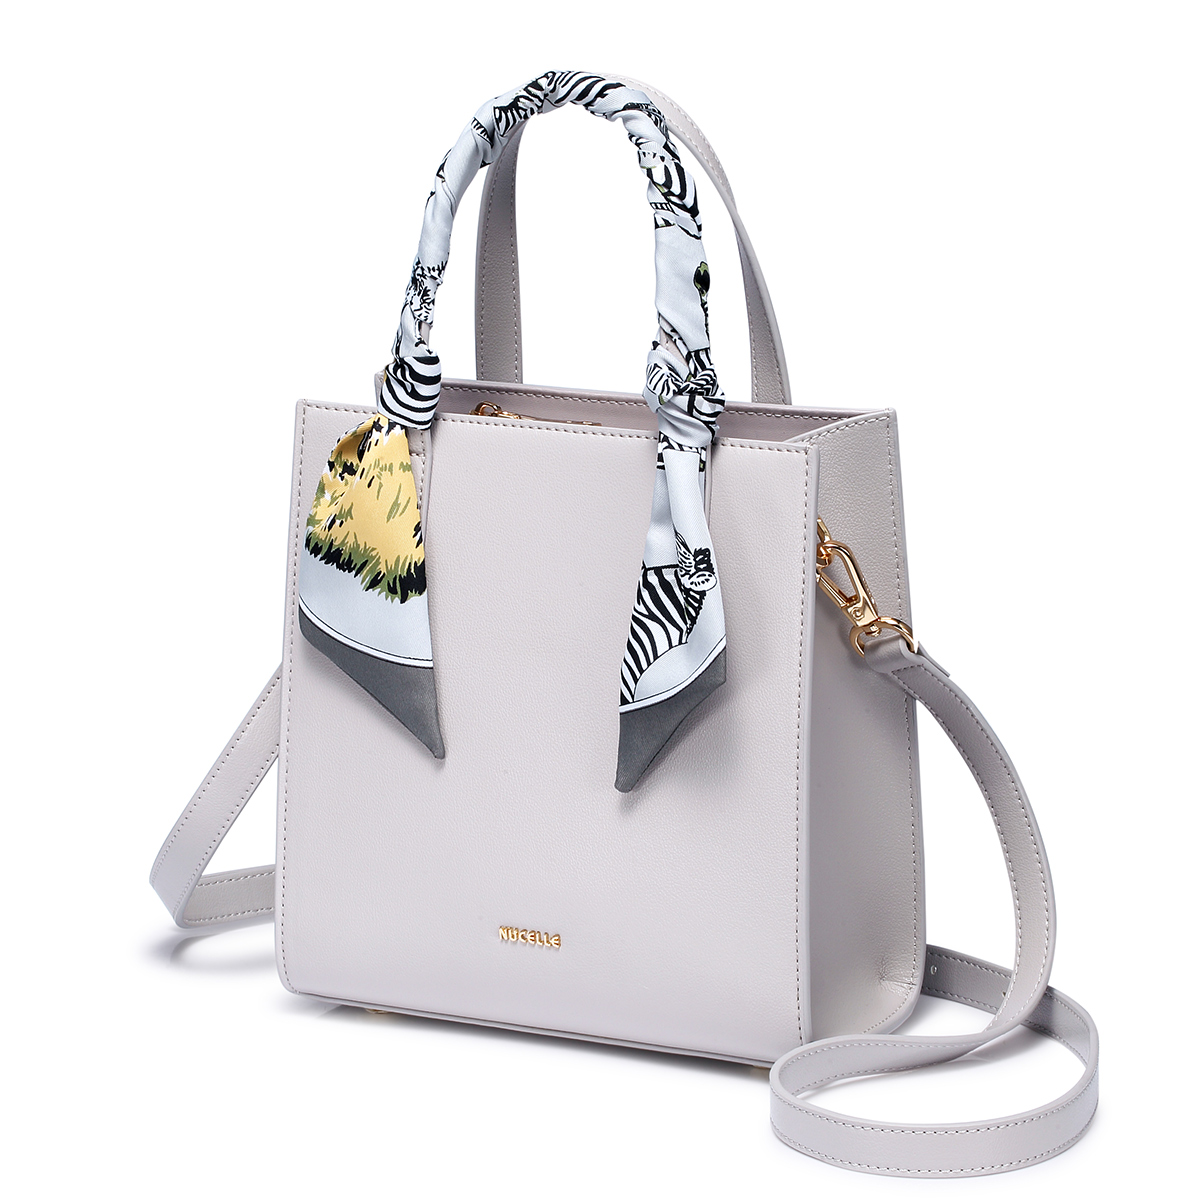 Nucelle 2020 New Lady Elegant Handbag Gray